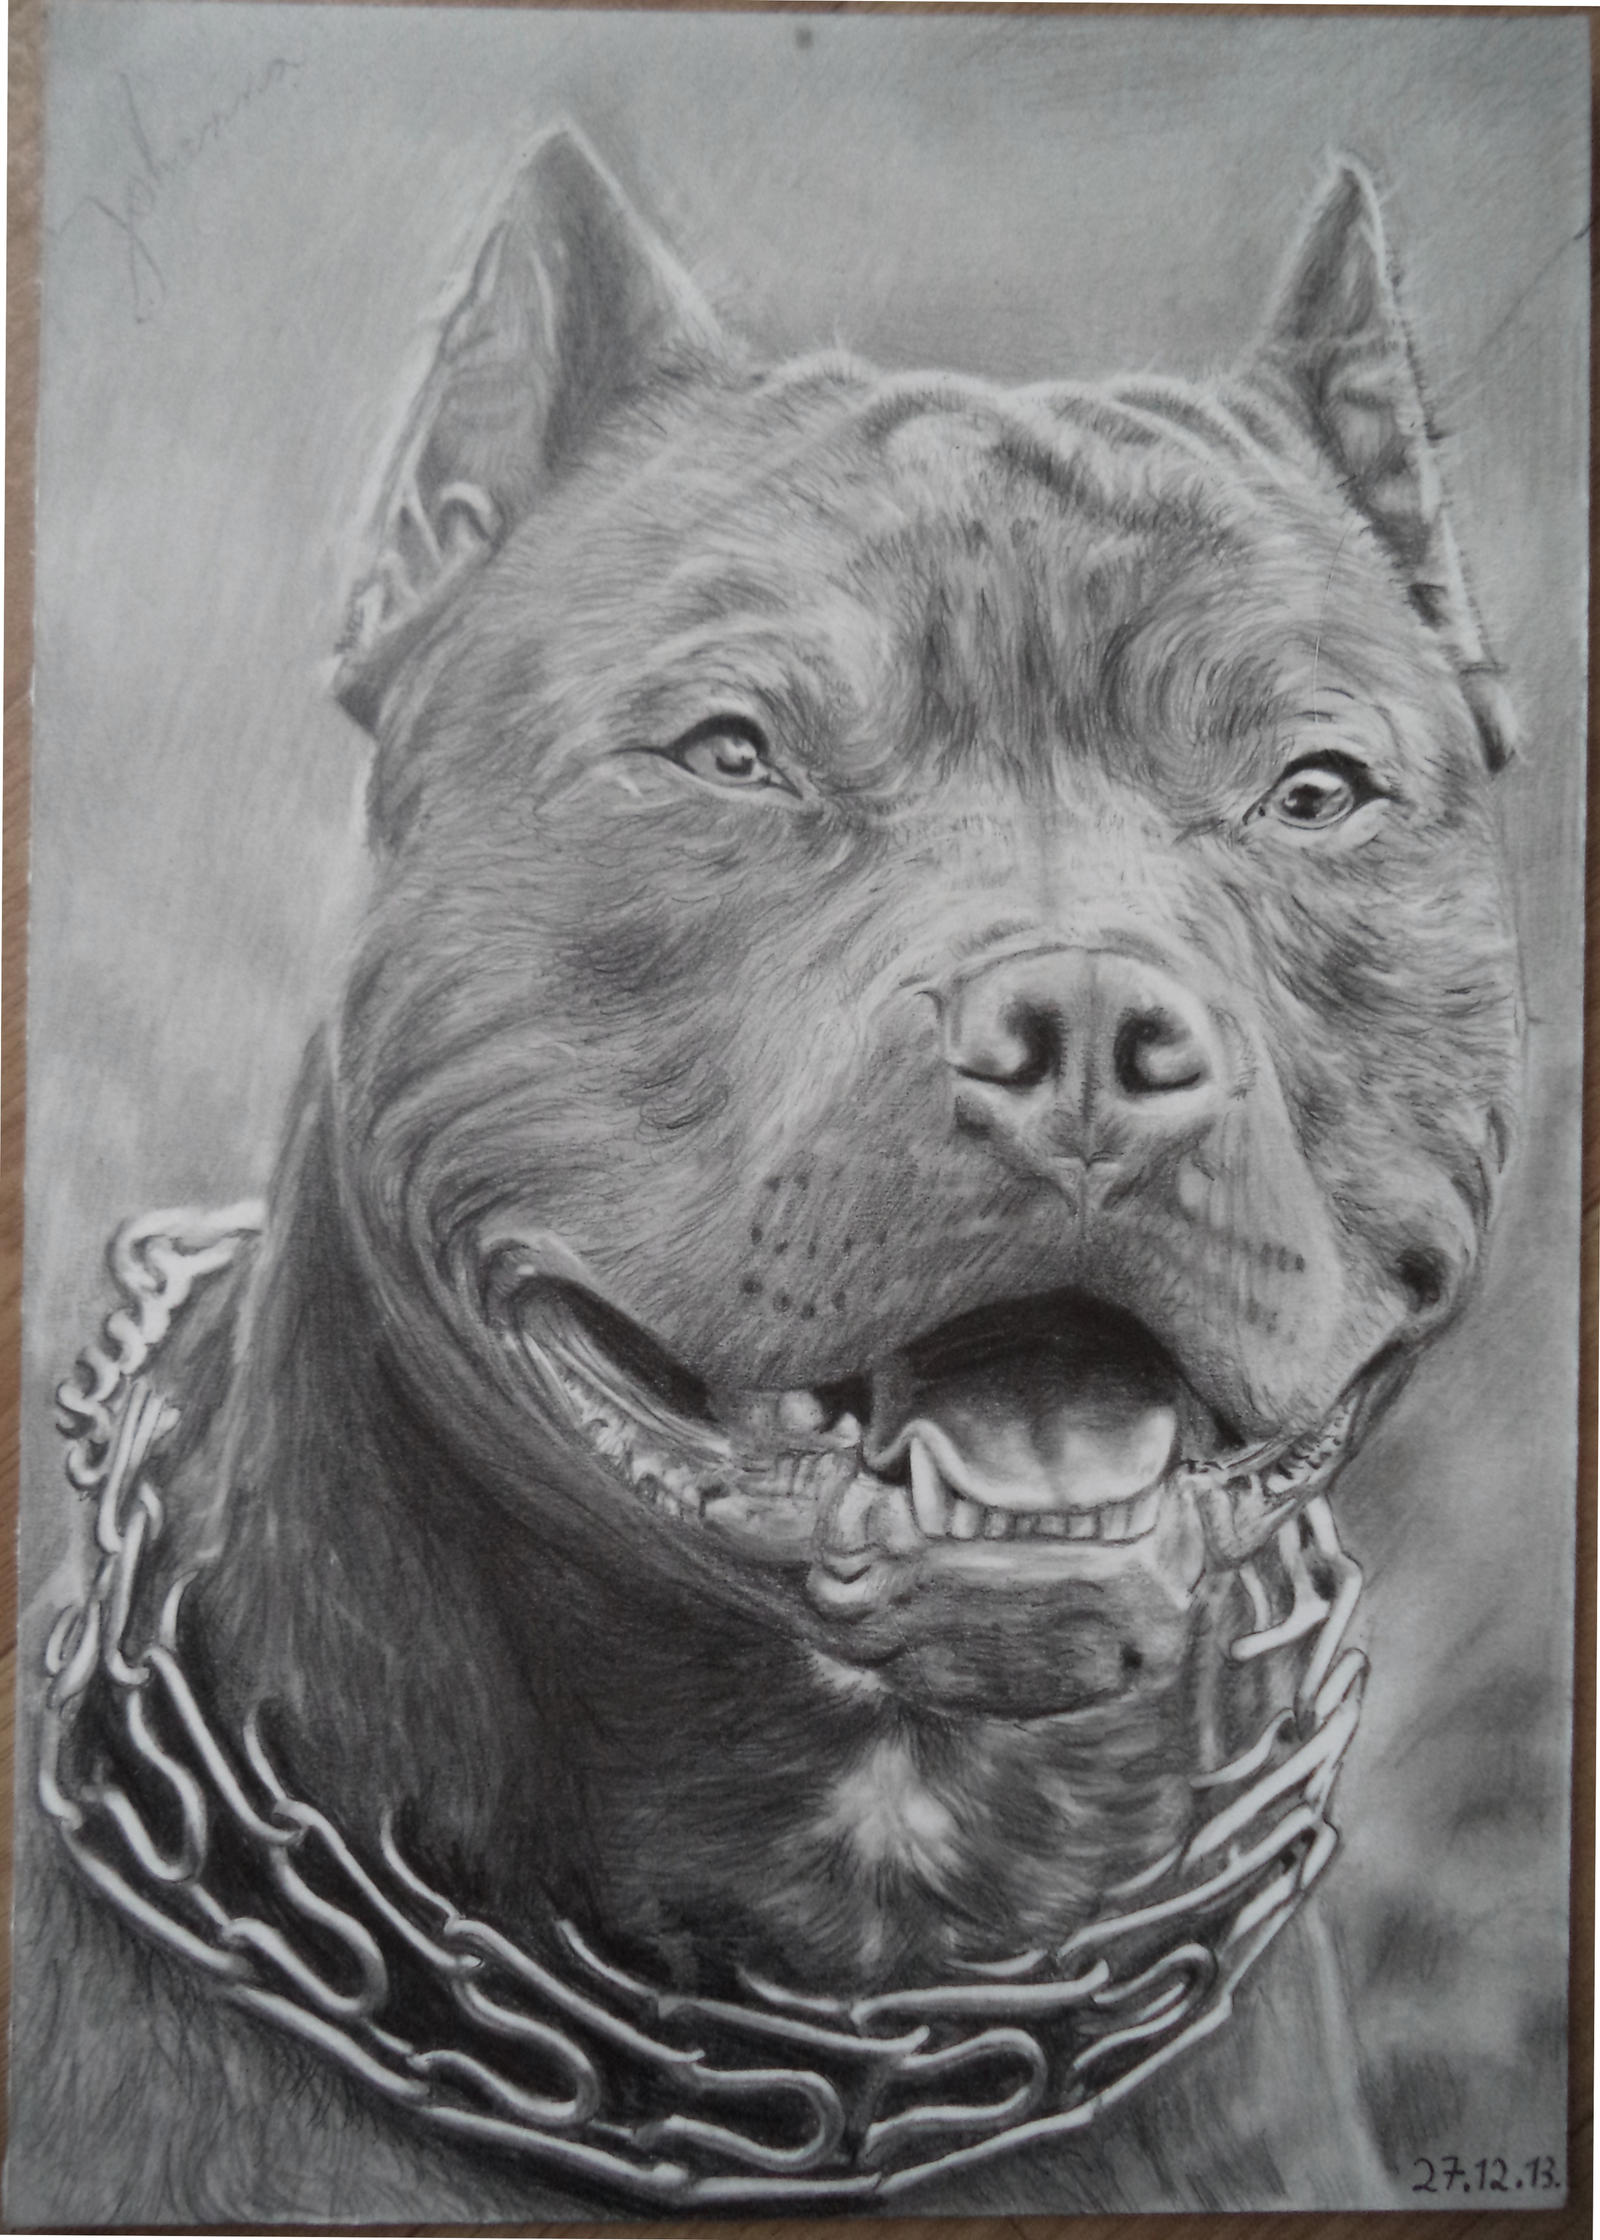 Uncategorized Drawing Pitbull drawing of a pitbull by valyanna8361 on deviantart valyanna8361